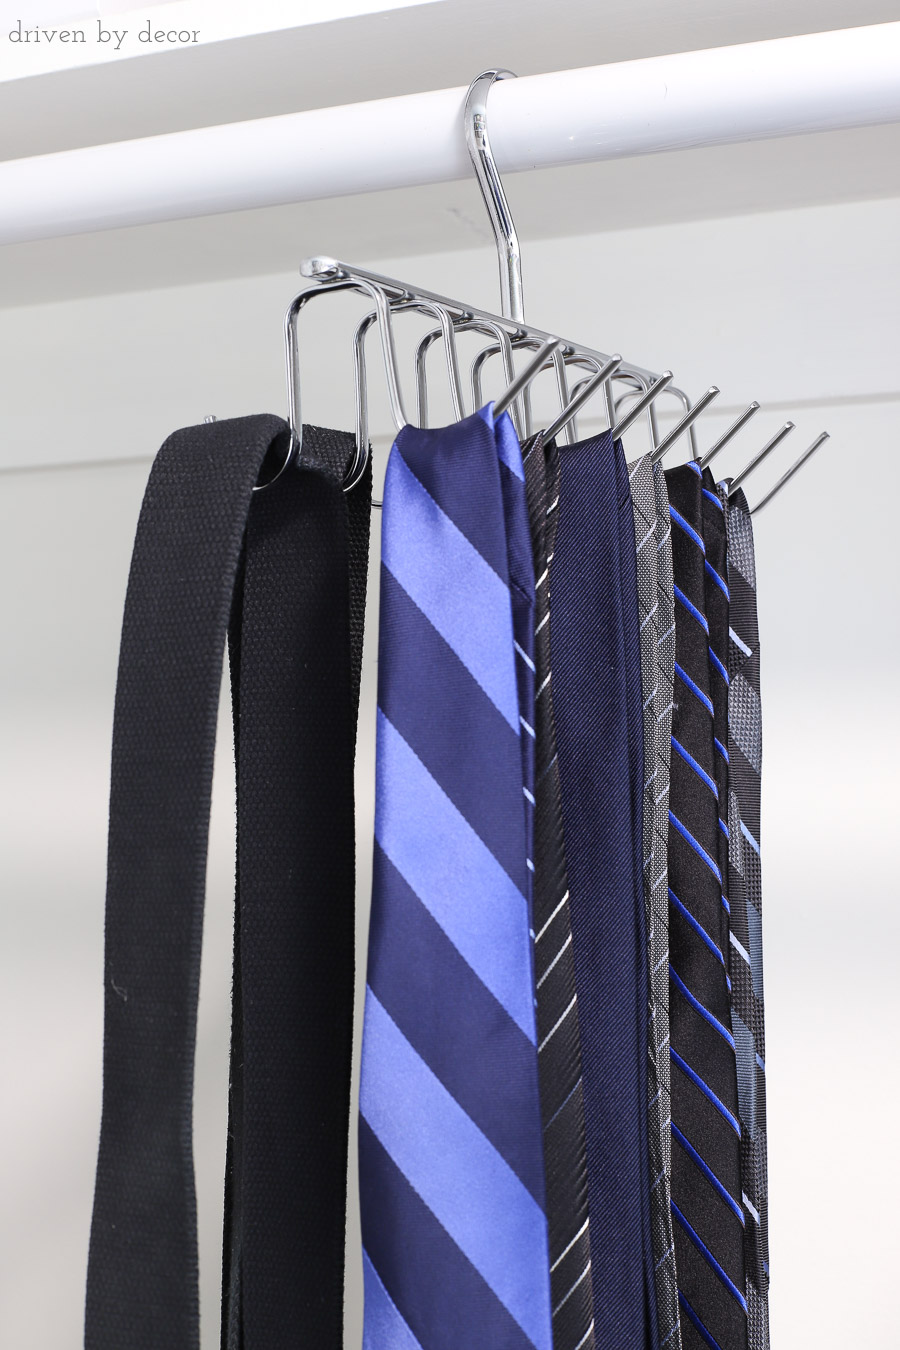 A hanging organizer that's a great way to organize your ties and belts!